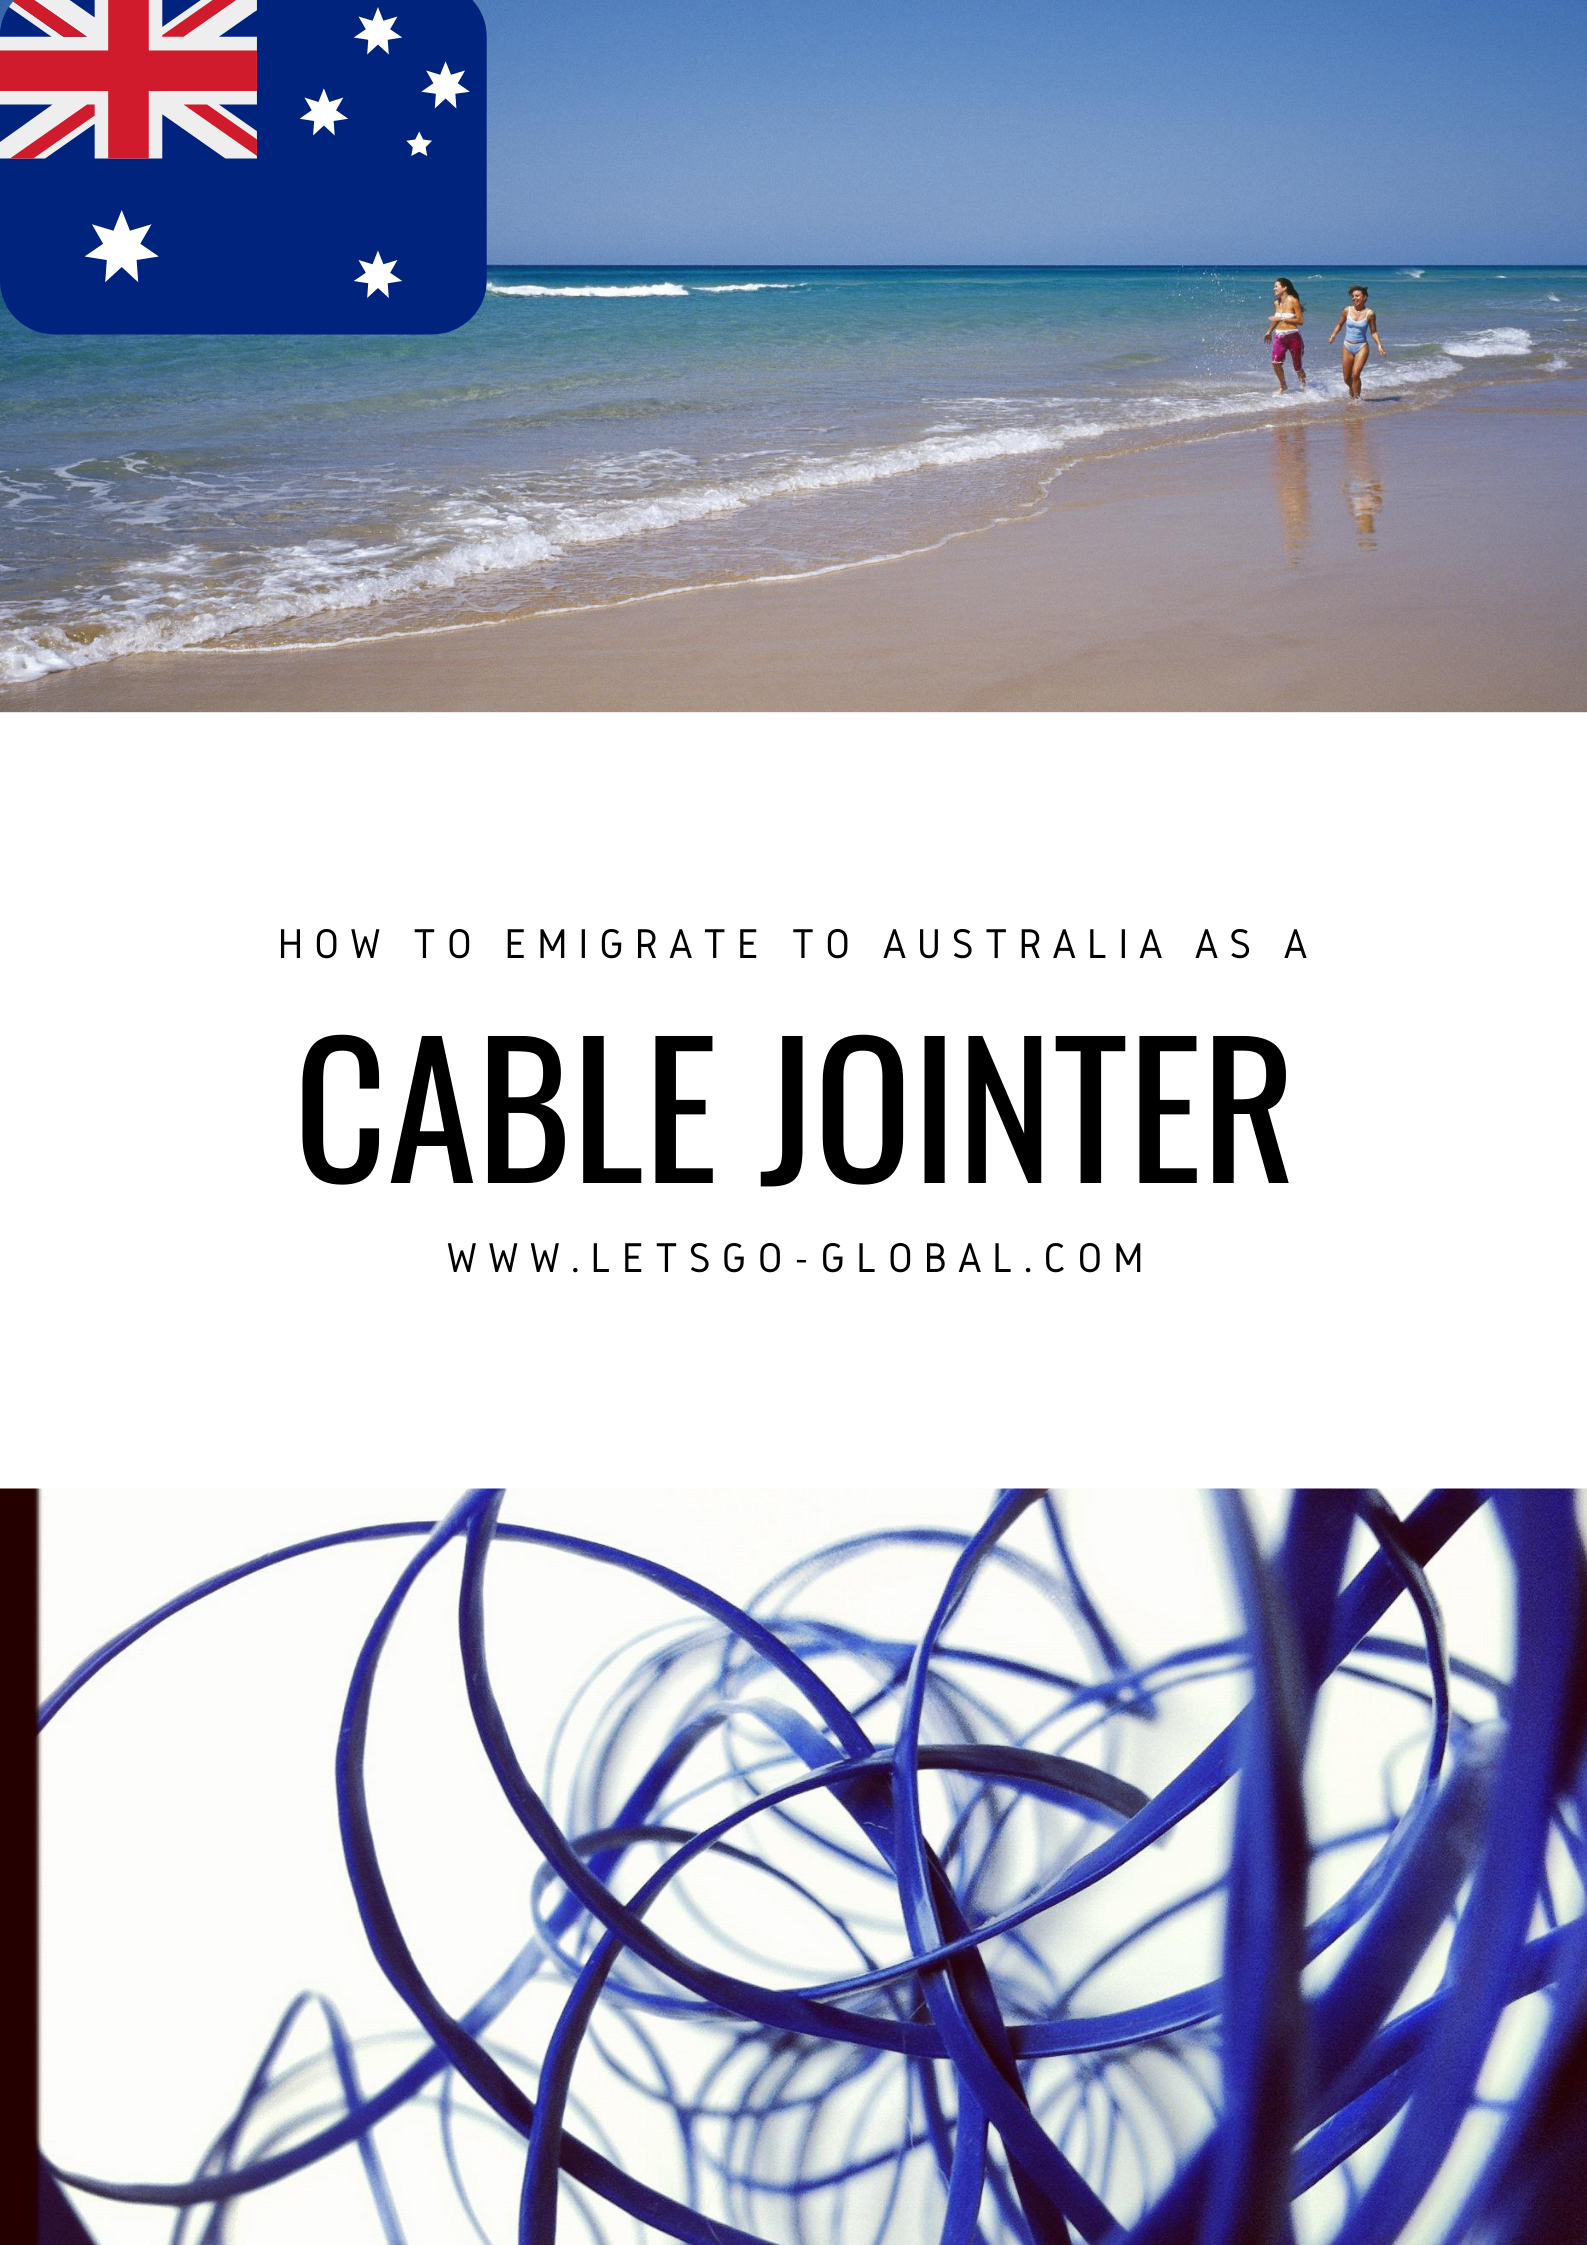 Migrate to Australia as a Cable Jointer